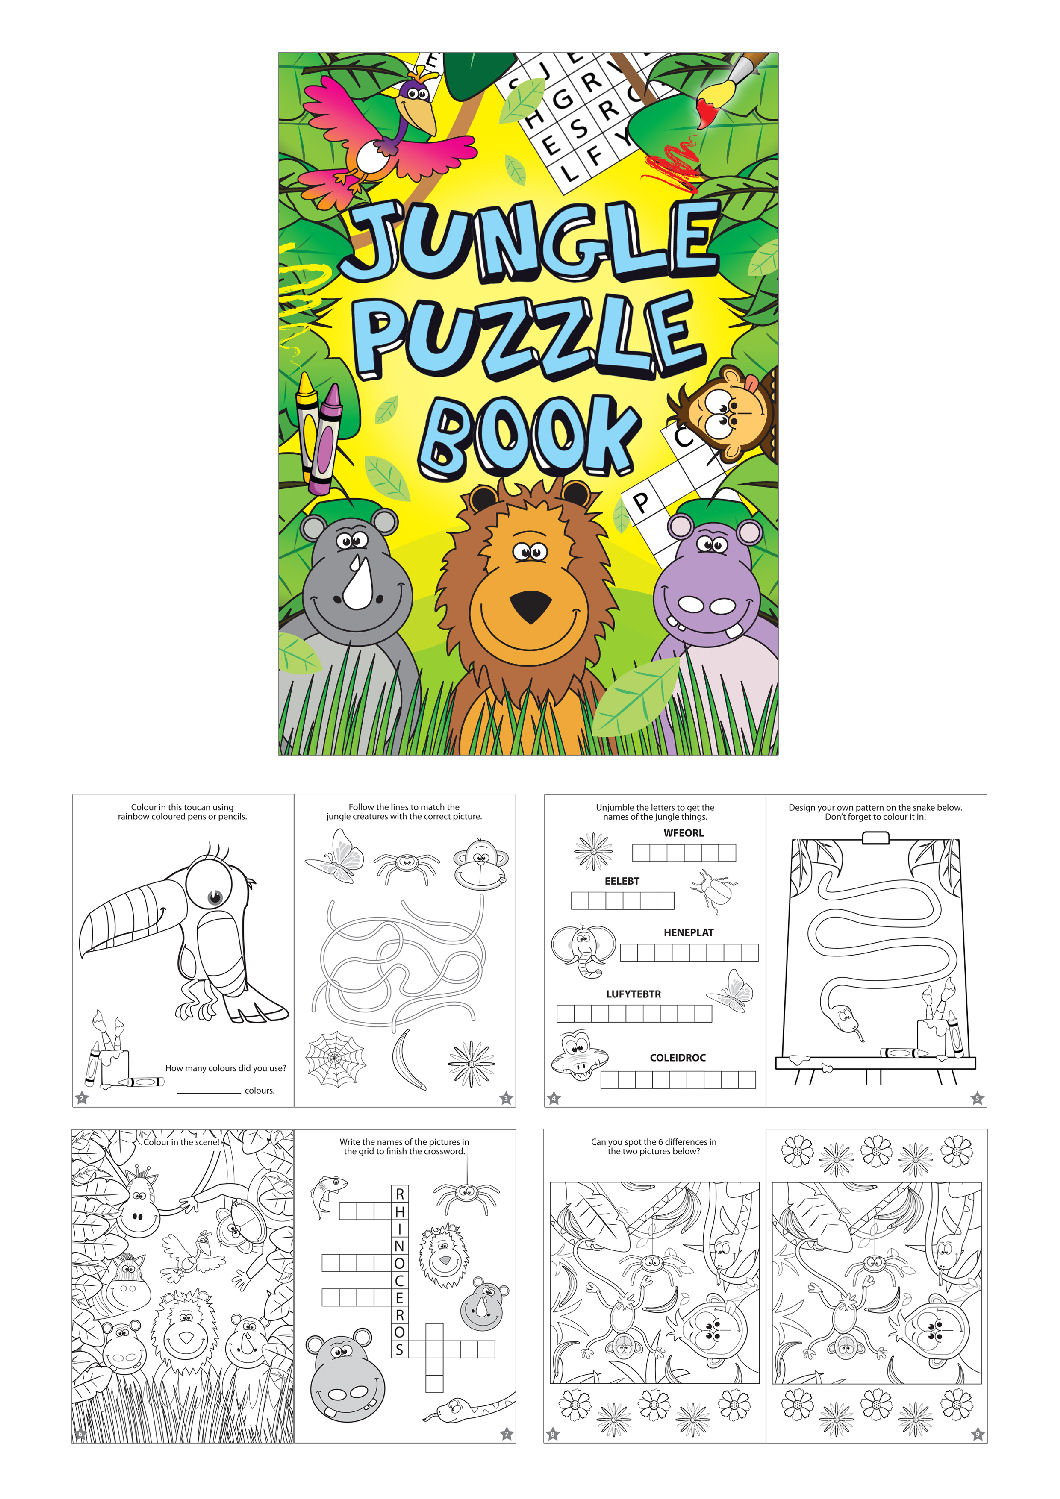 Pinata Toy Loot//Party Bag Fillers Wedding//Kids 12 Jungle Puzzle Books